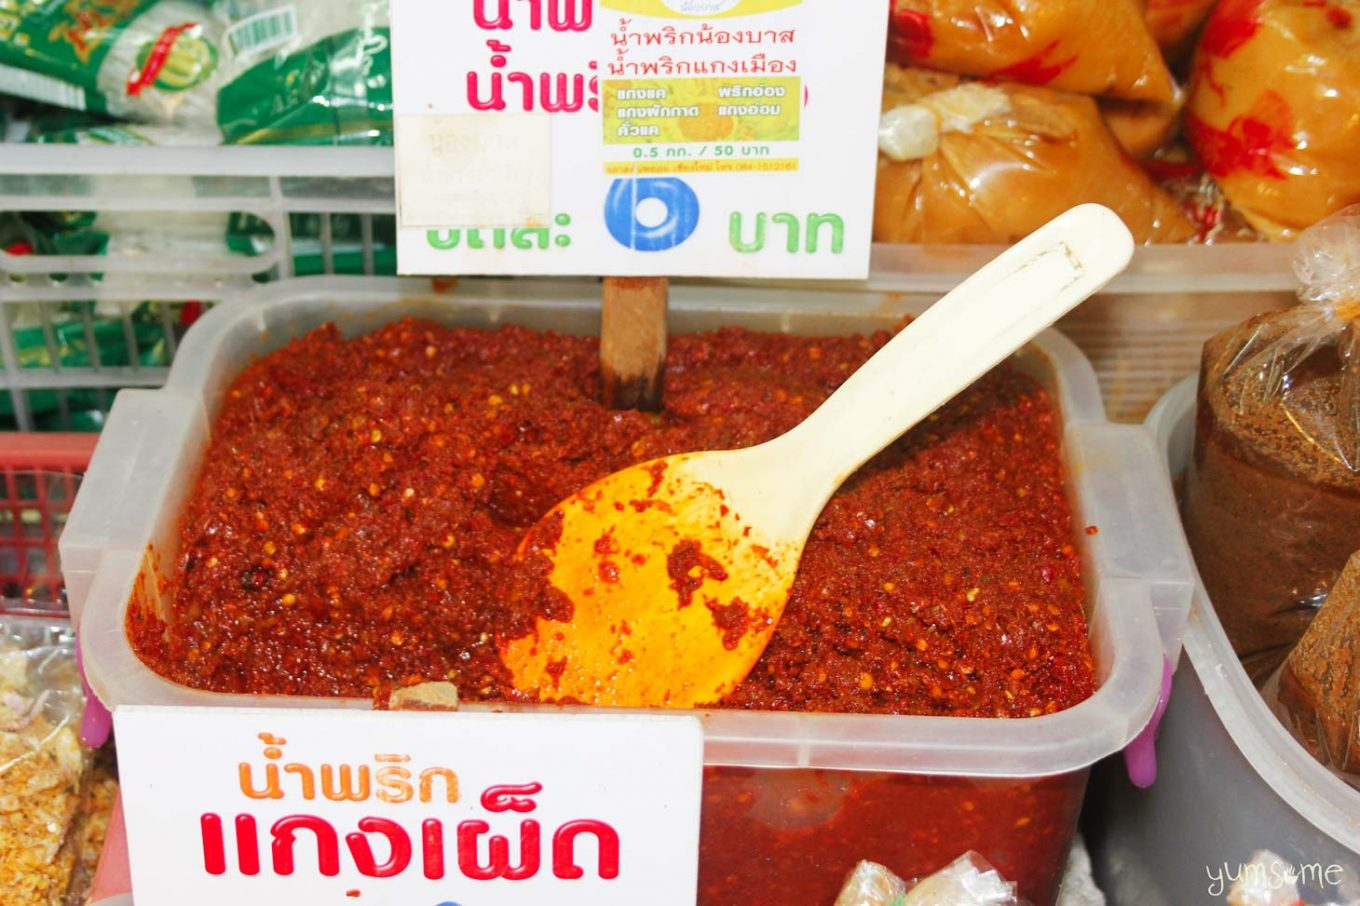 Red curry paste for sale at Kad Ton Payom, Chiang Mai. | yumsome.com